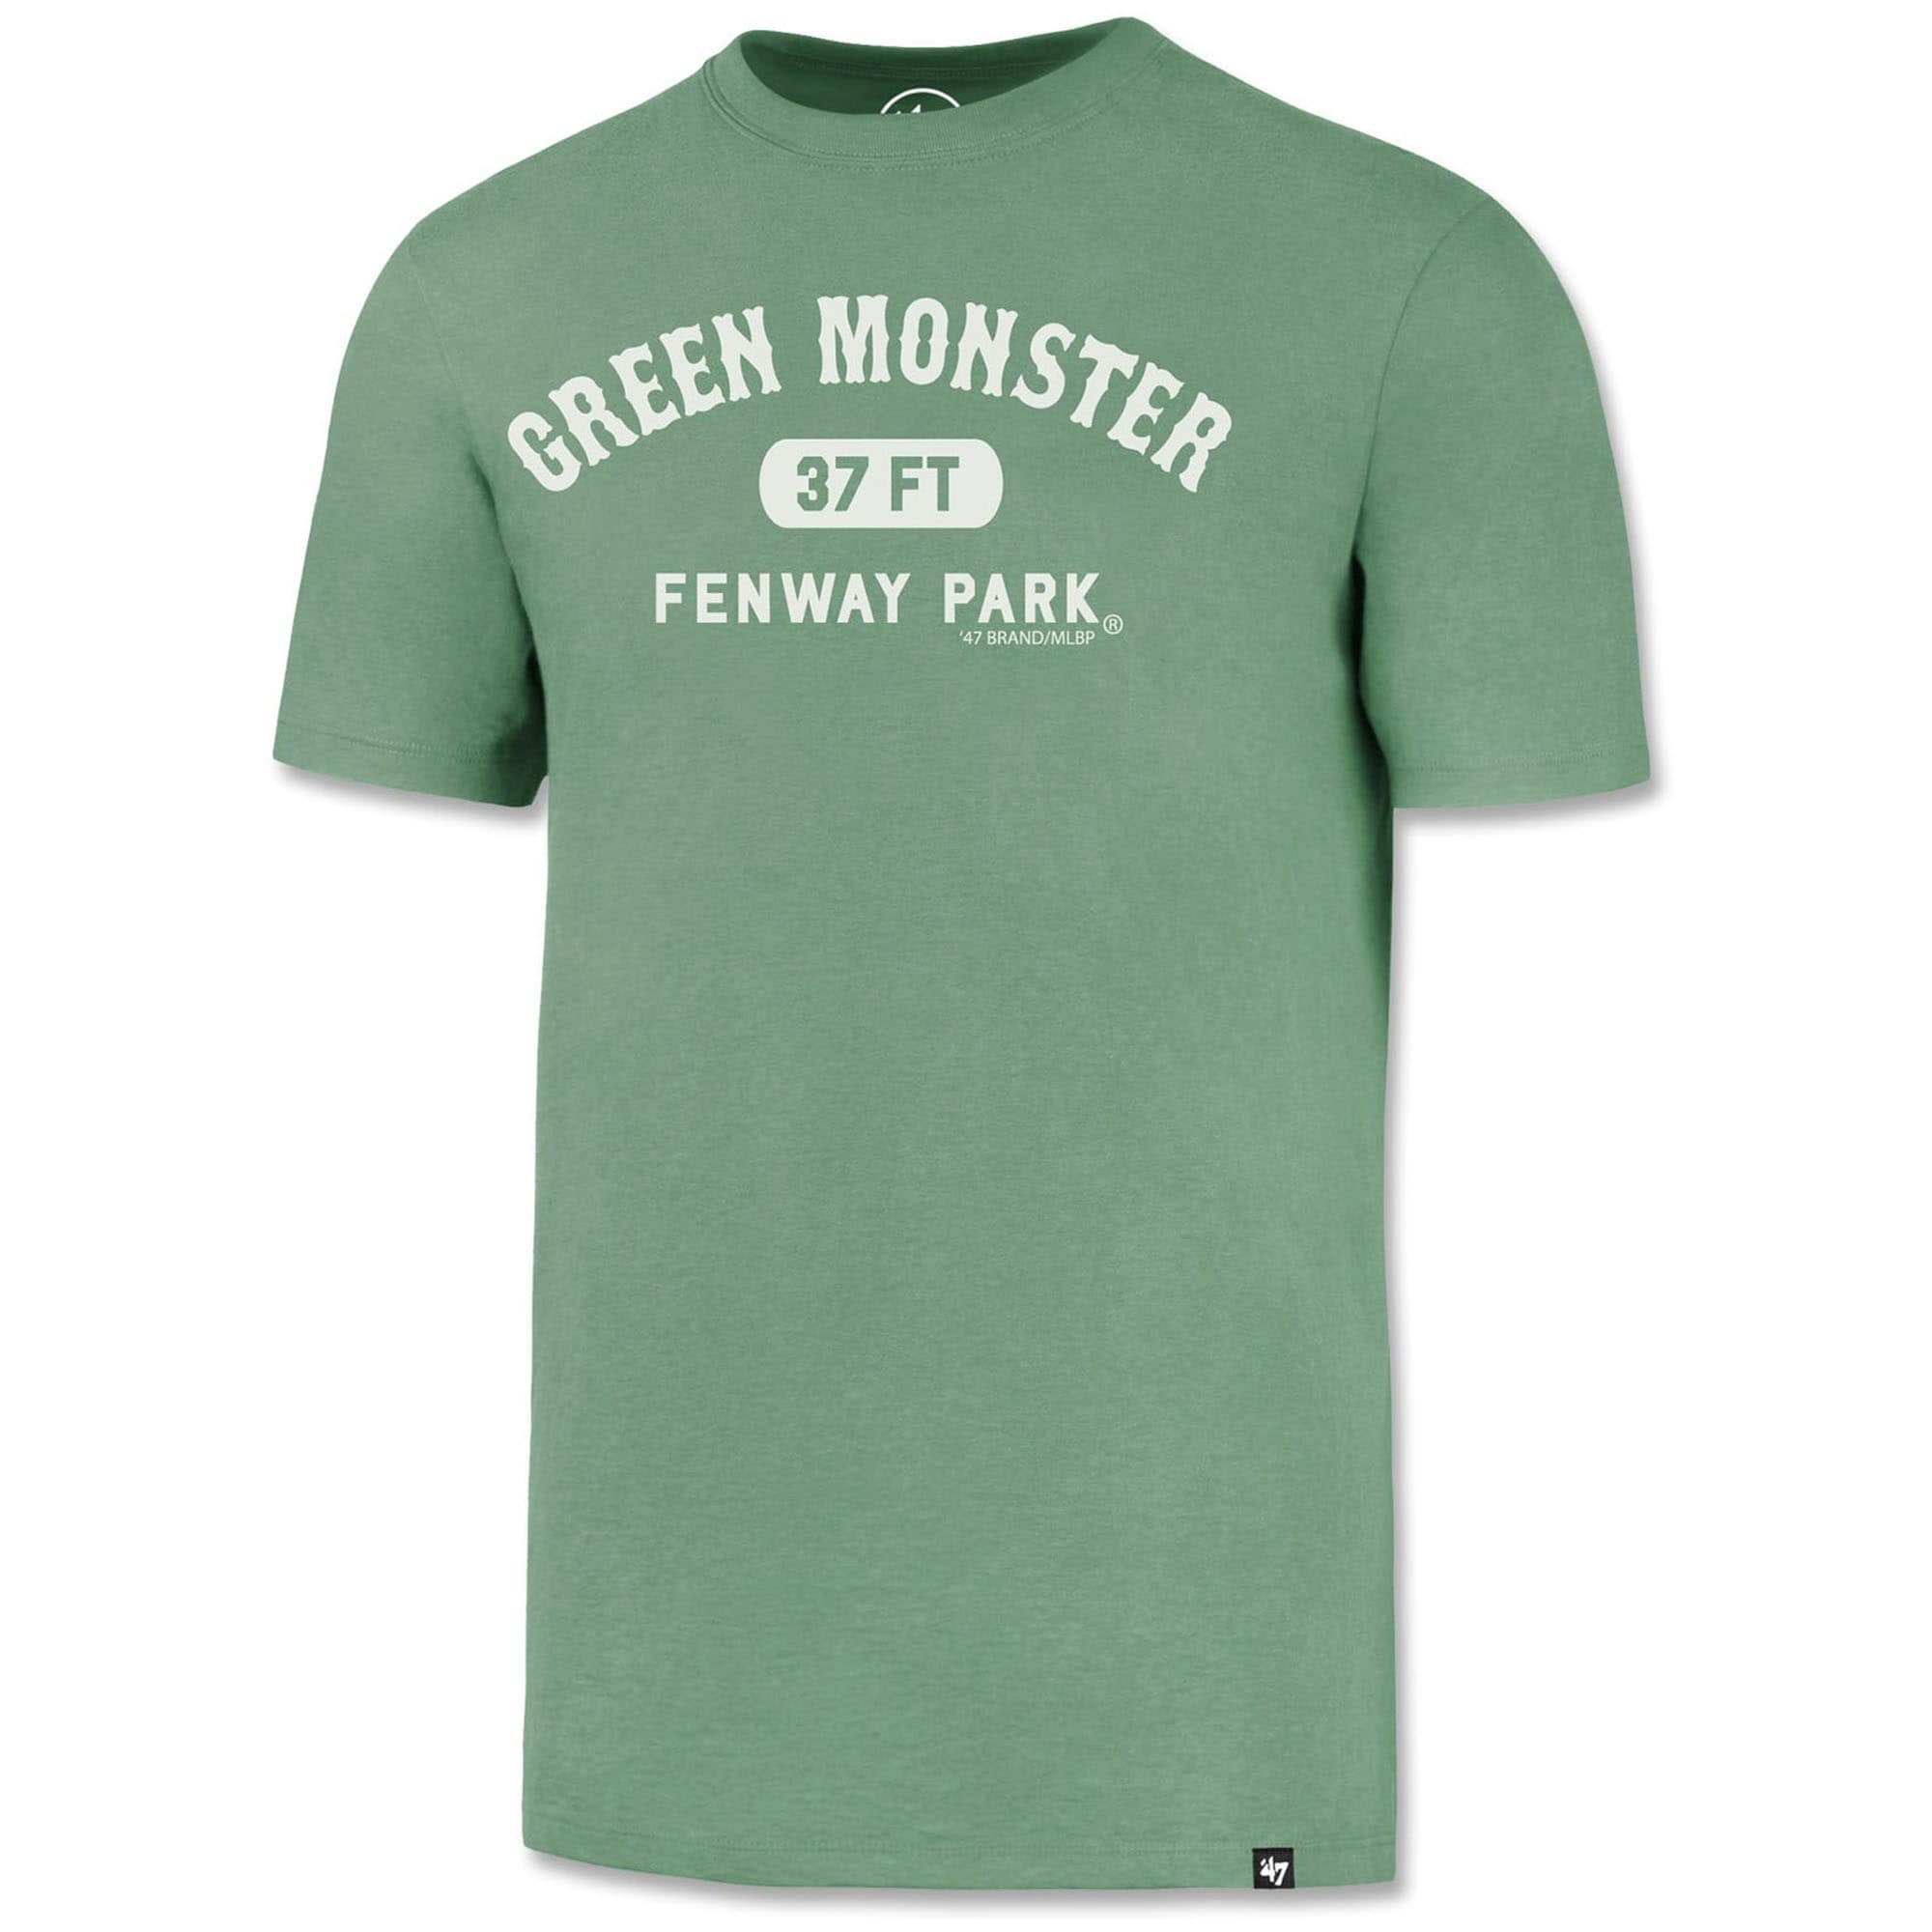 Boston Red Sox '47 Fenway Park Green Monster 37 Feet T-Shirt - Green